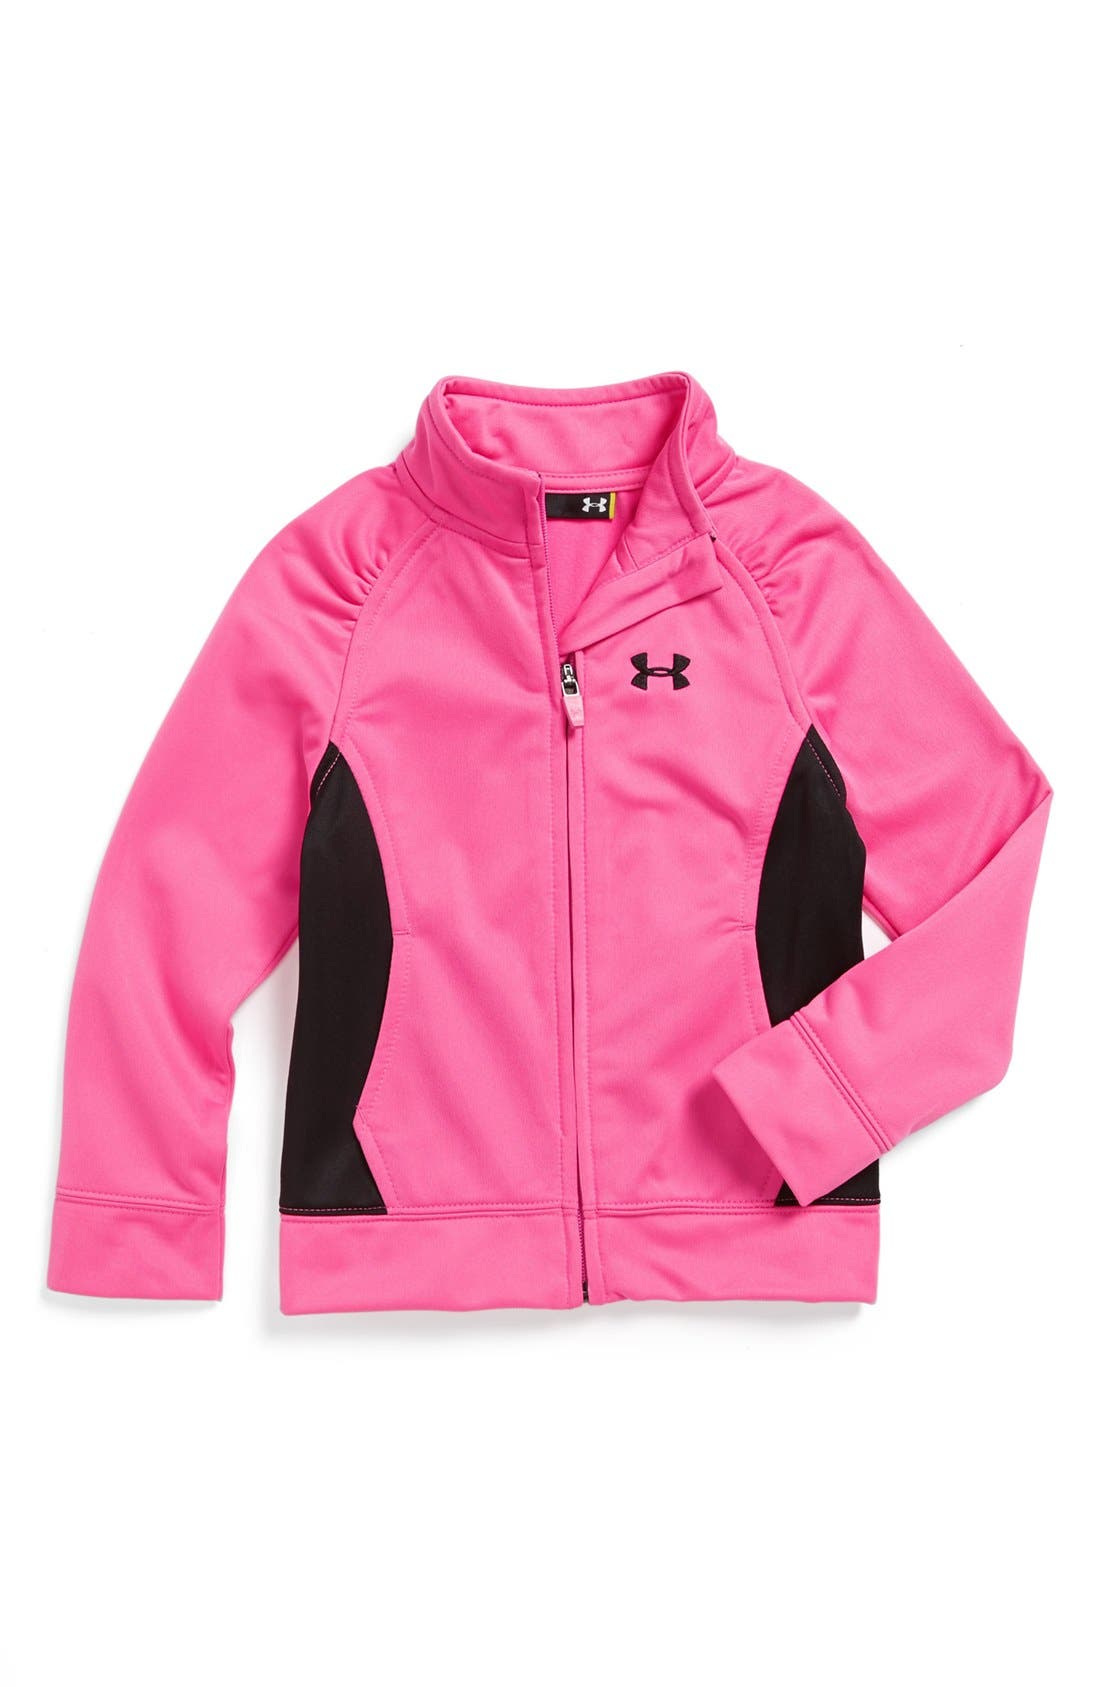 Main Image - Under Armour 'Time Out' Track Jacket (Toddler Girls)